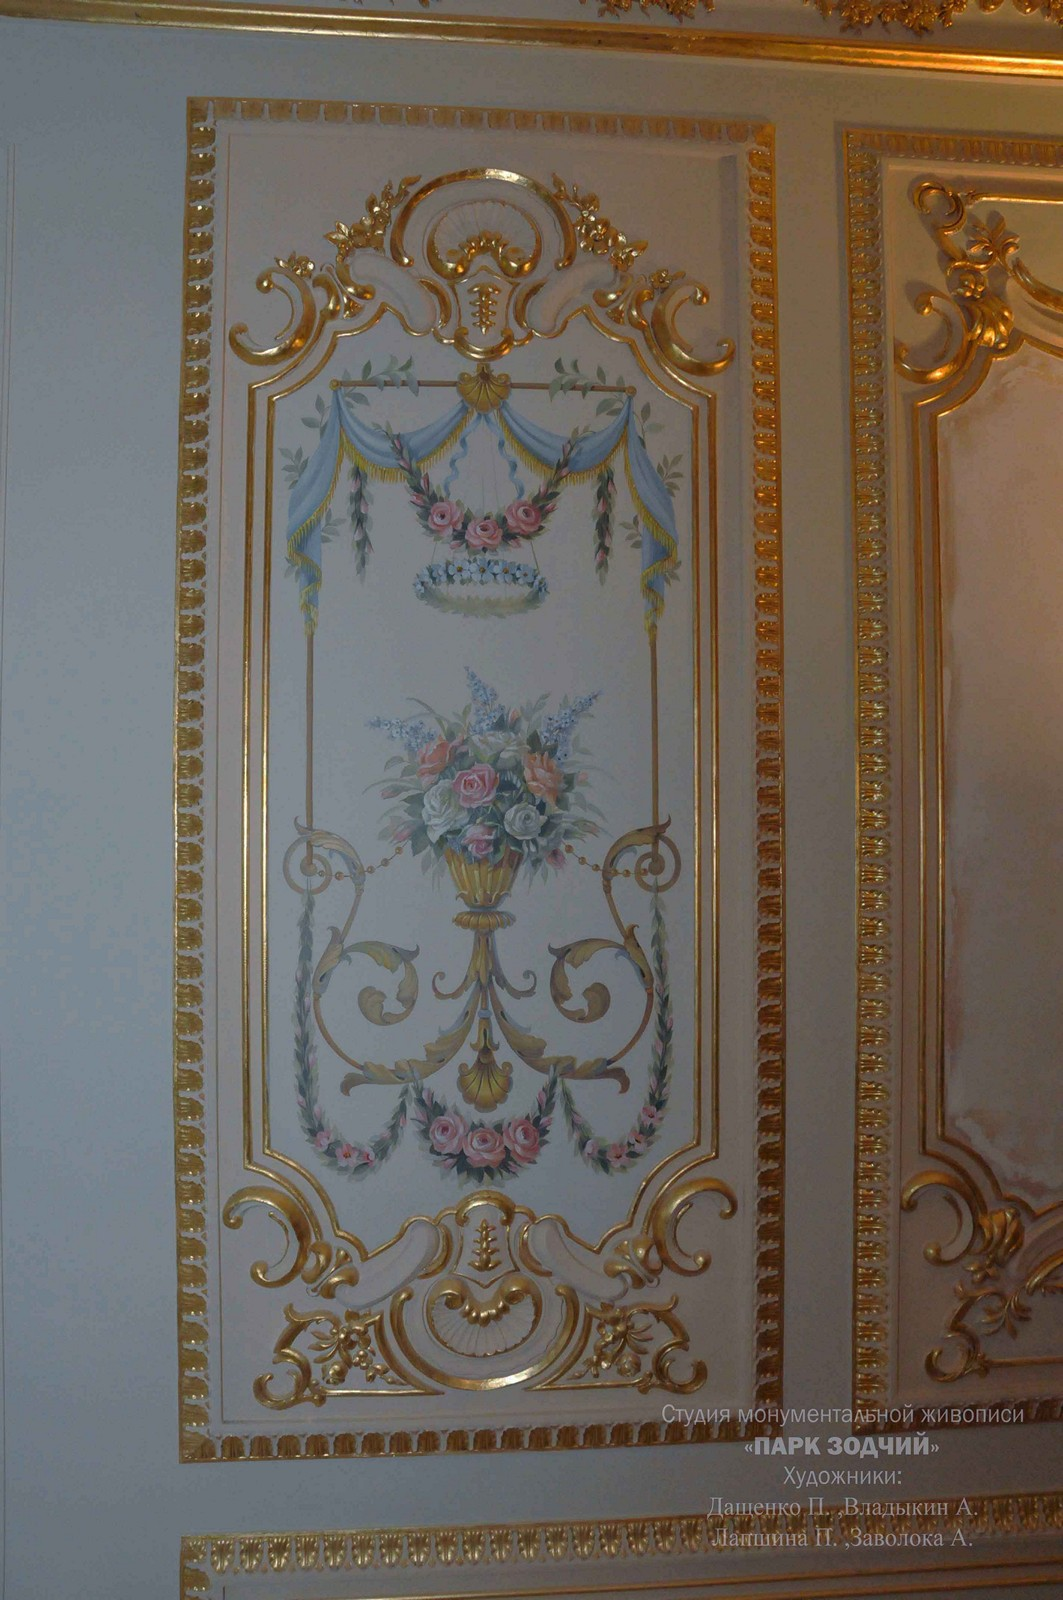 Stucco mirror with polychrome painting